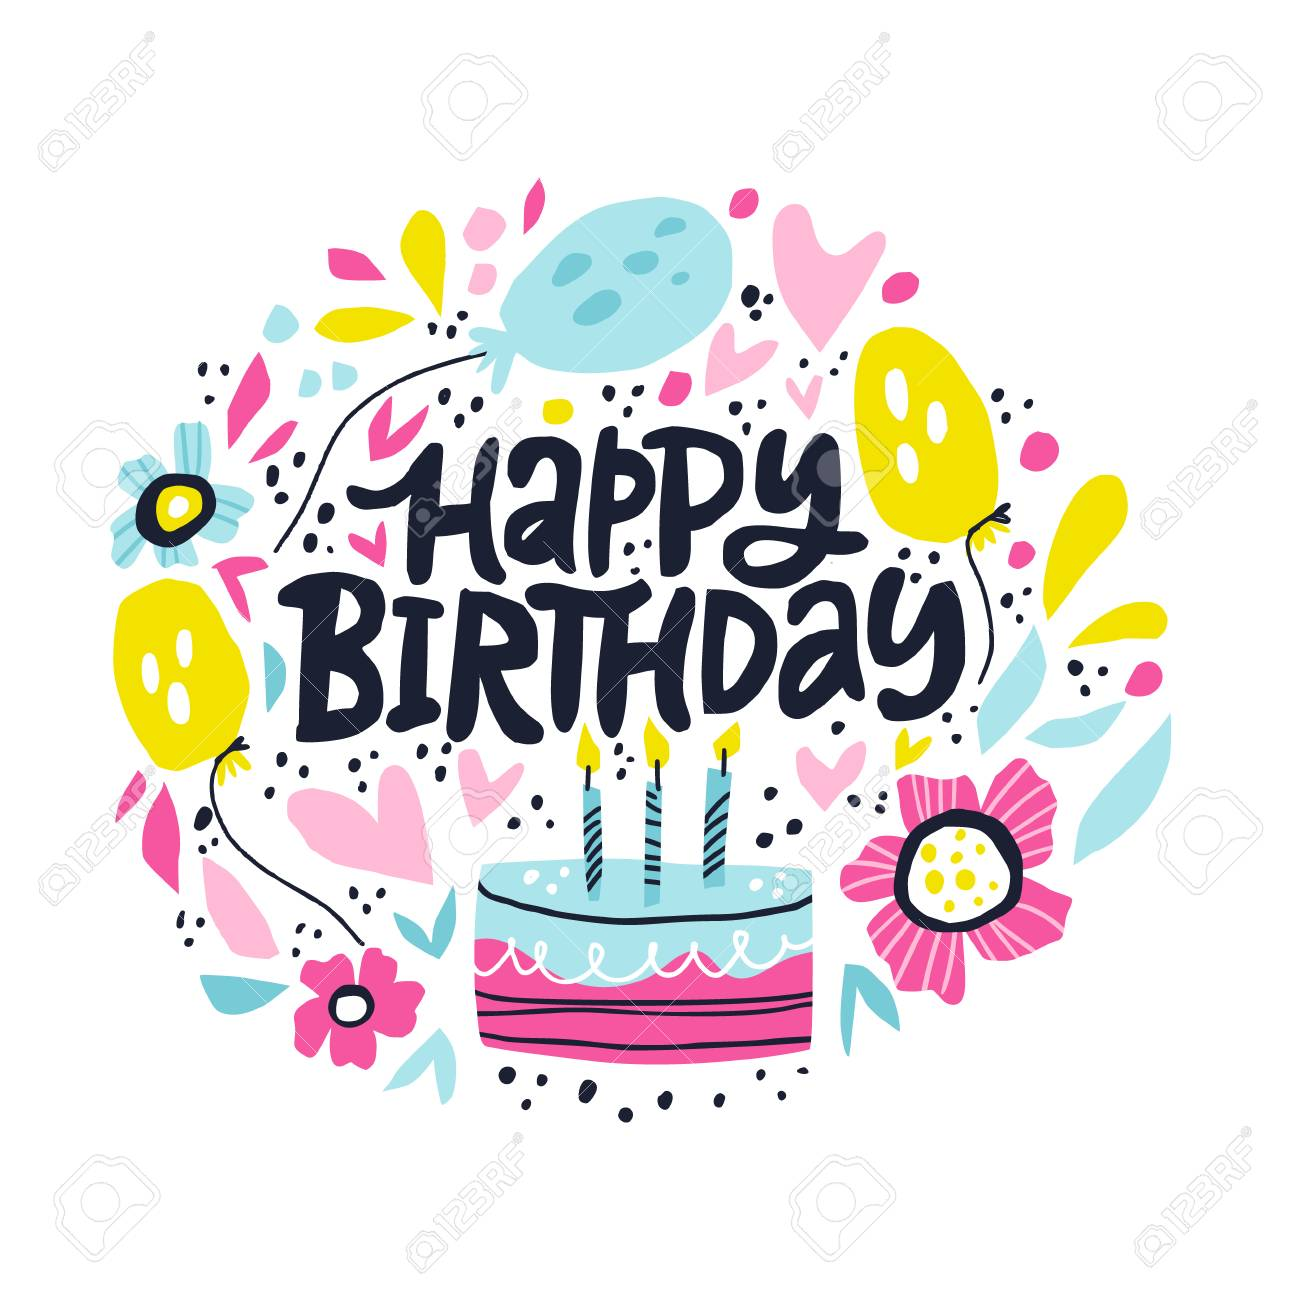 Happy Birthday Lettering In Hand Drawn Frame Congratulations Royalty Free Cliparts Vectors And Stock Illustration Image 124890956